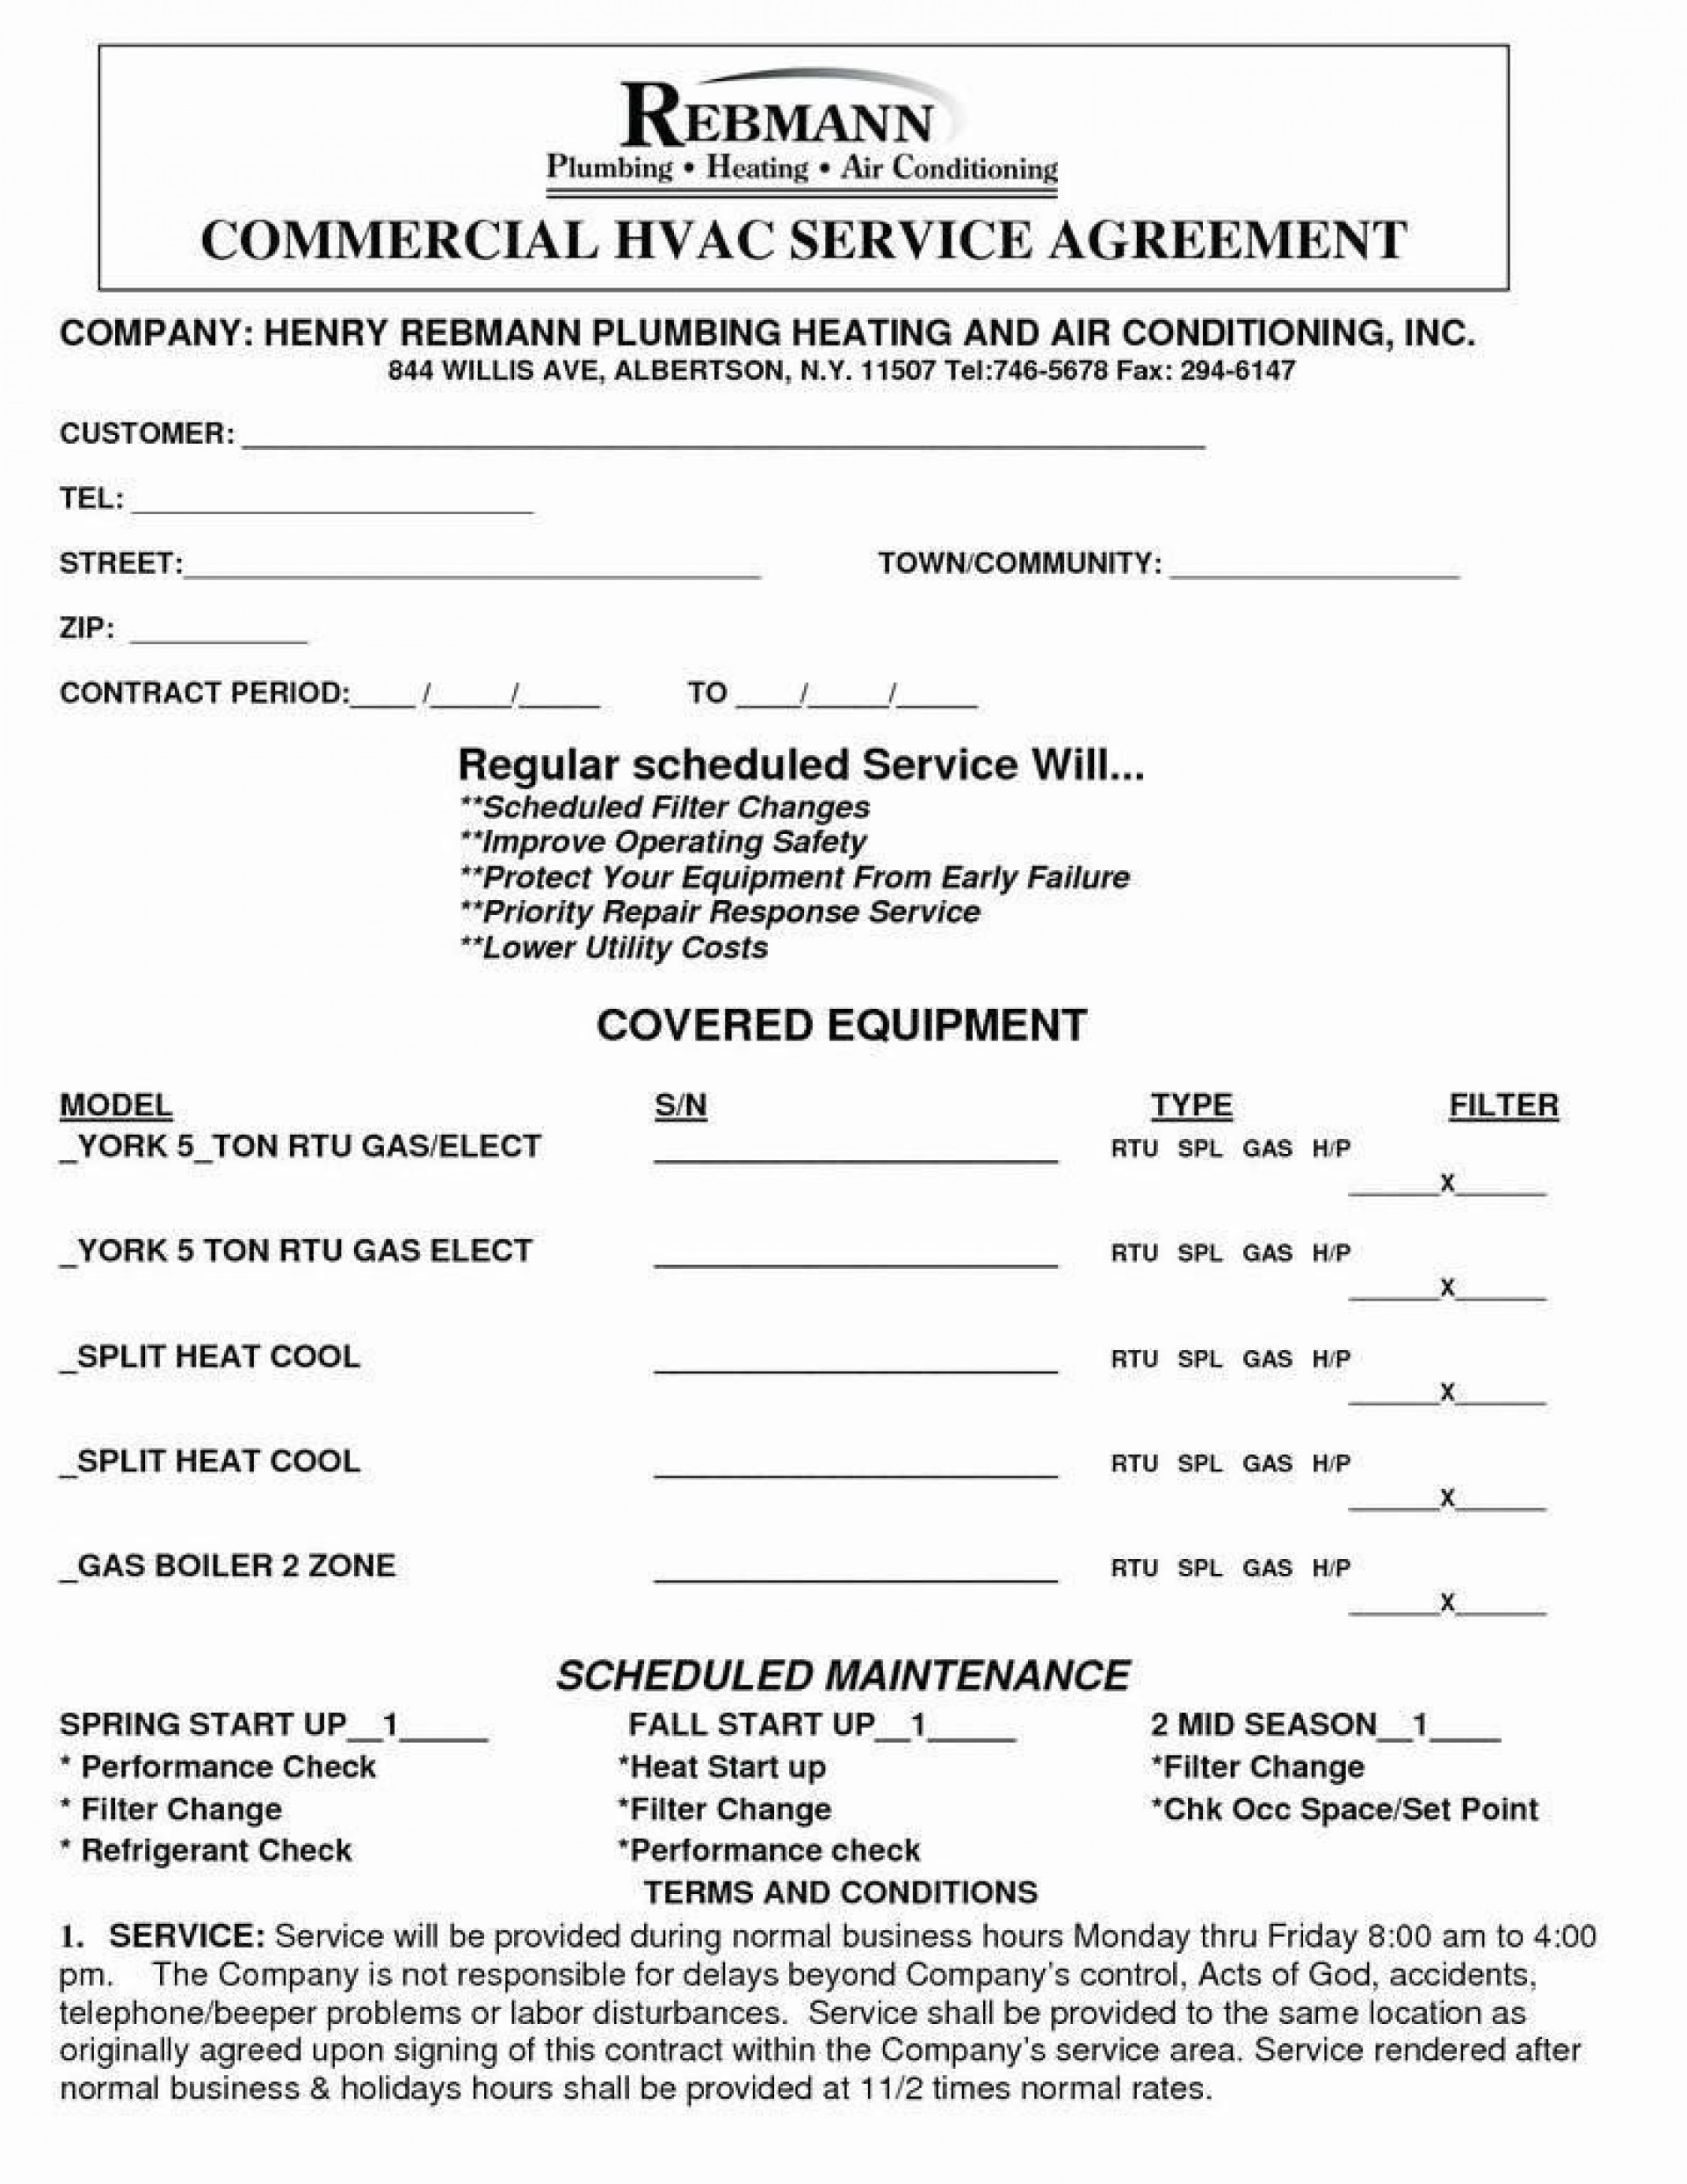 007 Dreaded Commercial Hvac Service Agreement Template Picture  Maintenance Contract1920